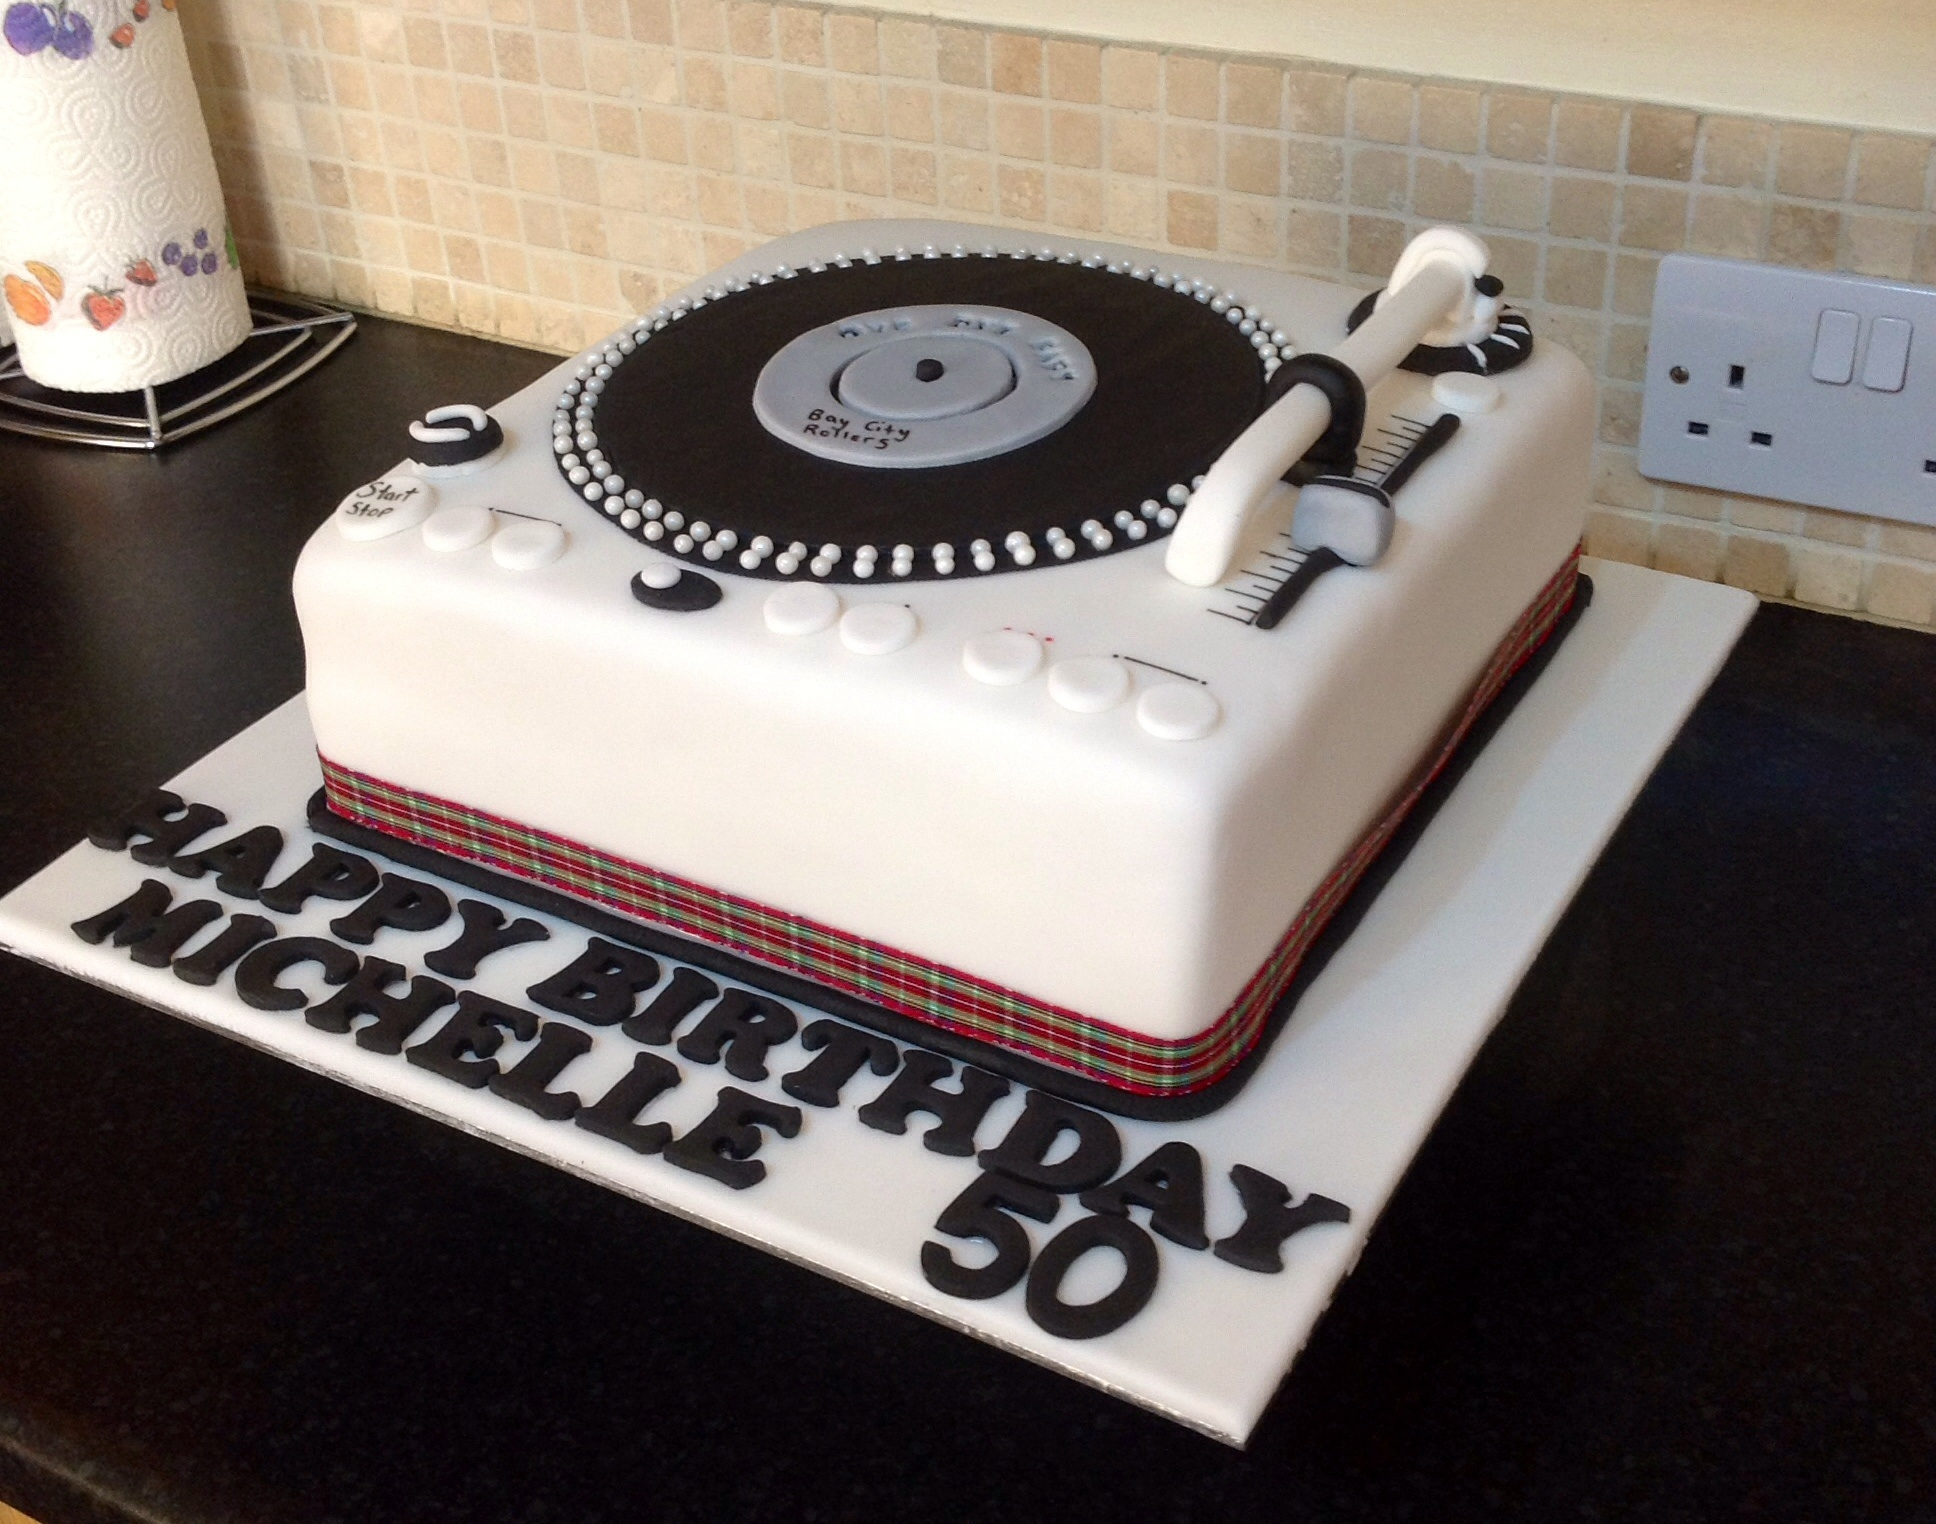 50th Record Player Cake Bay City Rollers Theme